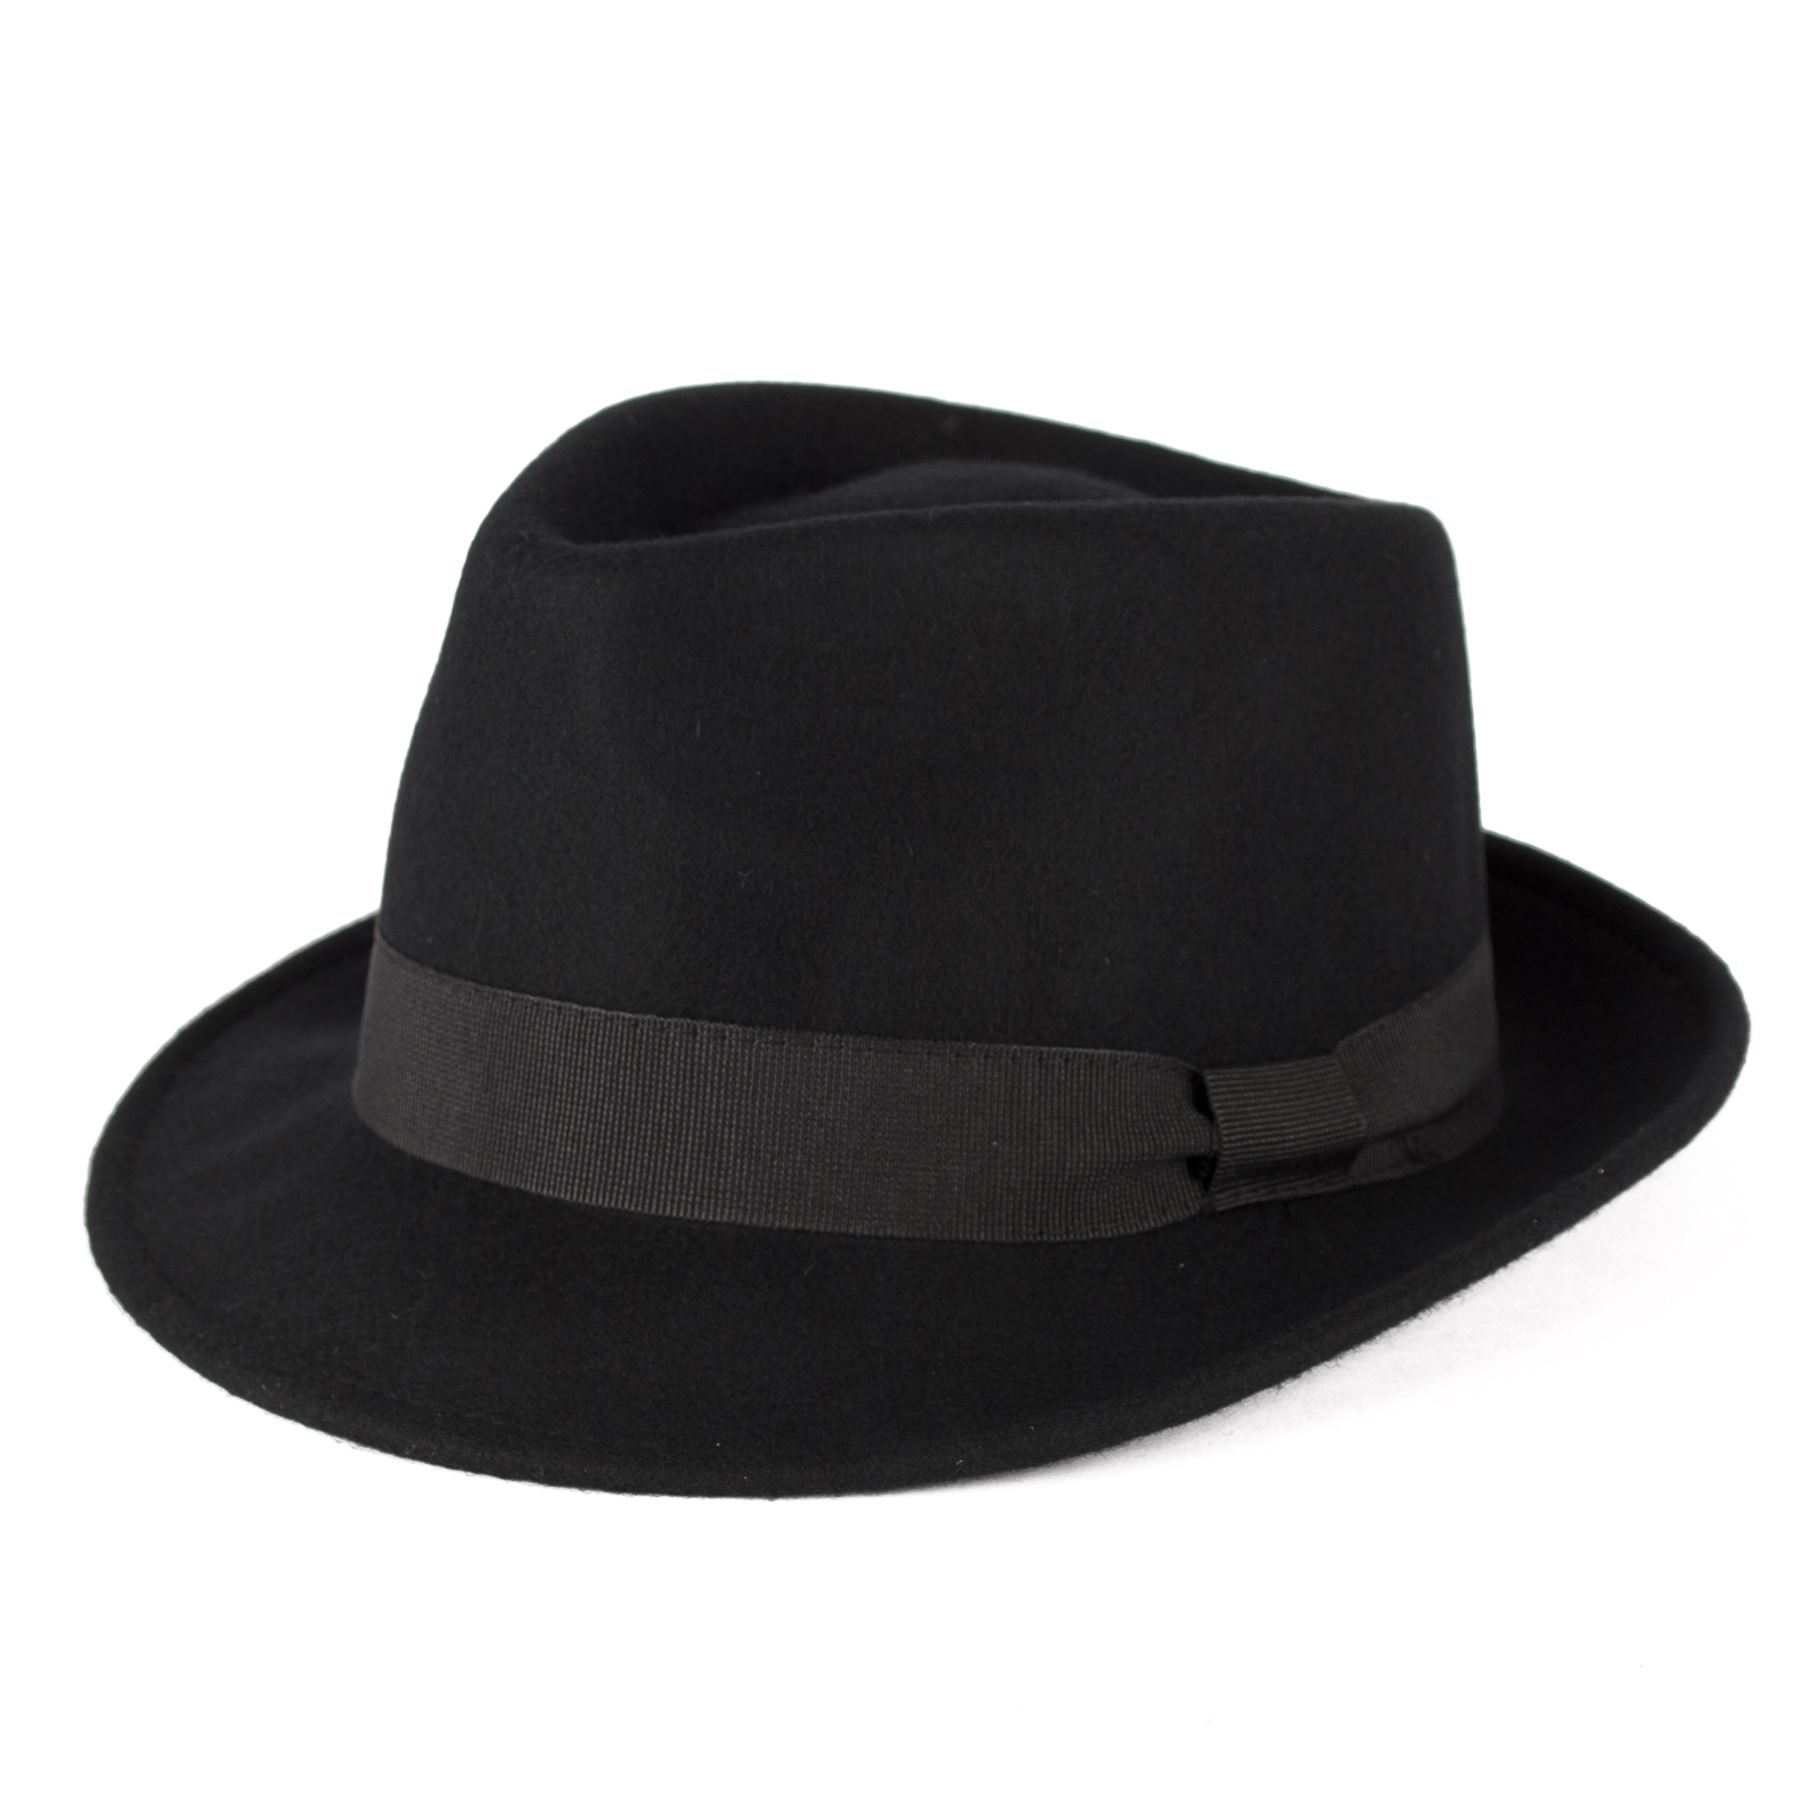 58efd1375d6502 100 Wool Trilby Hat With Grosgrain Band Handmade in Italy Black L ...